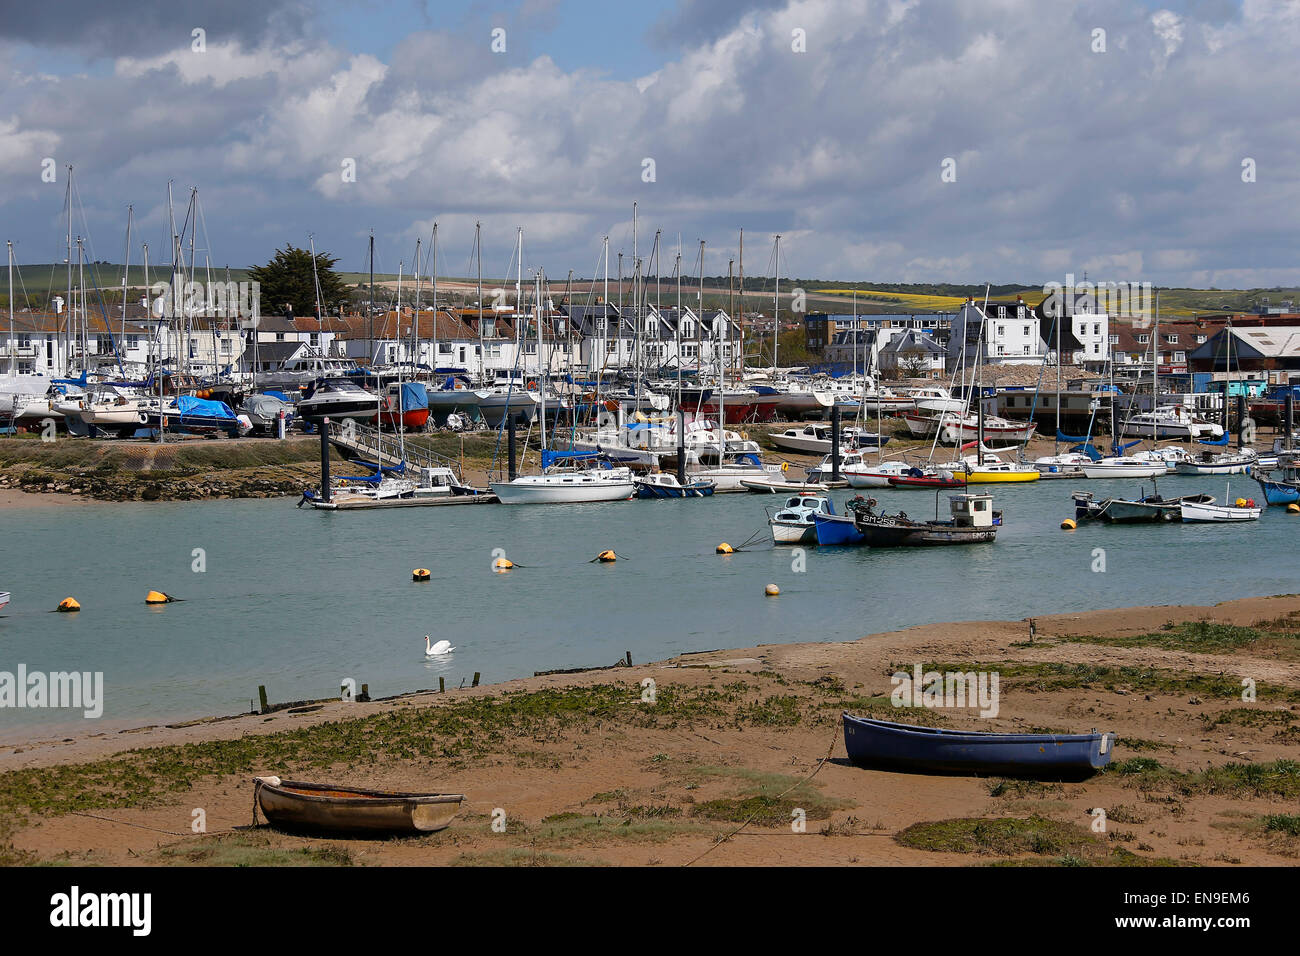 General view of Shoreham-by-Sea and the river Adur. Stock Photo